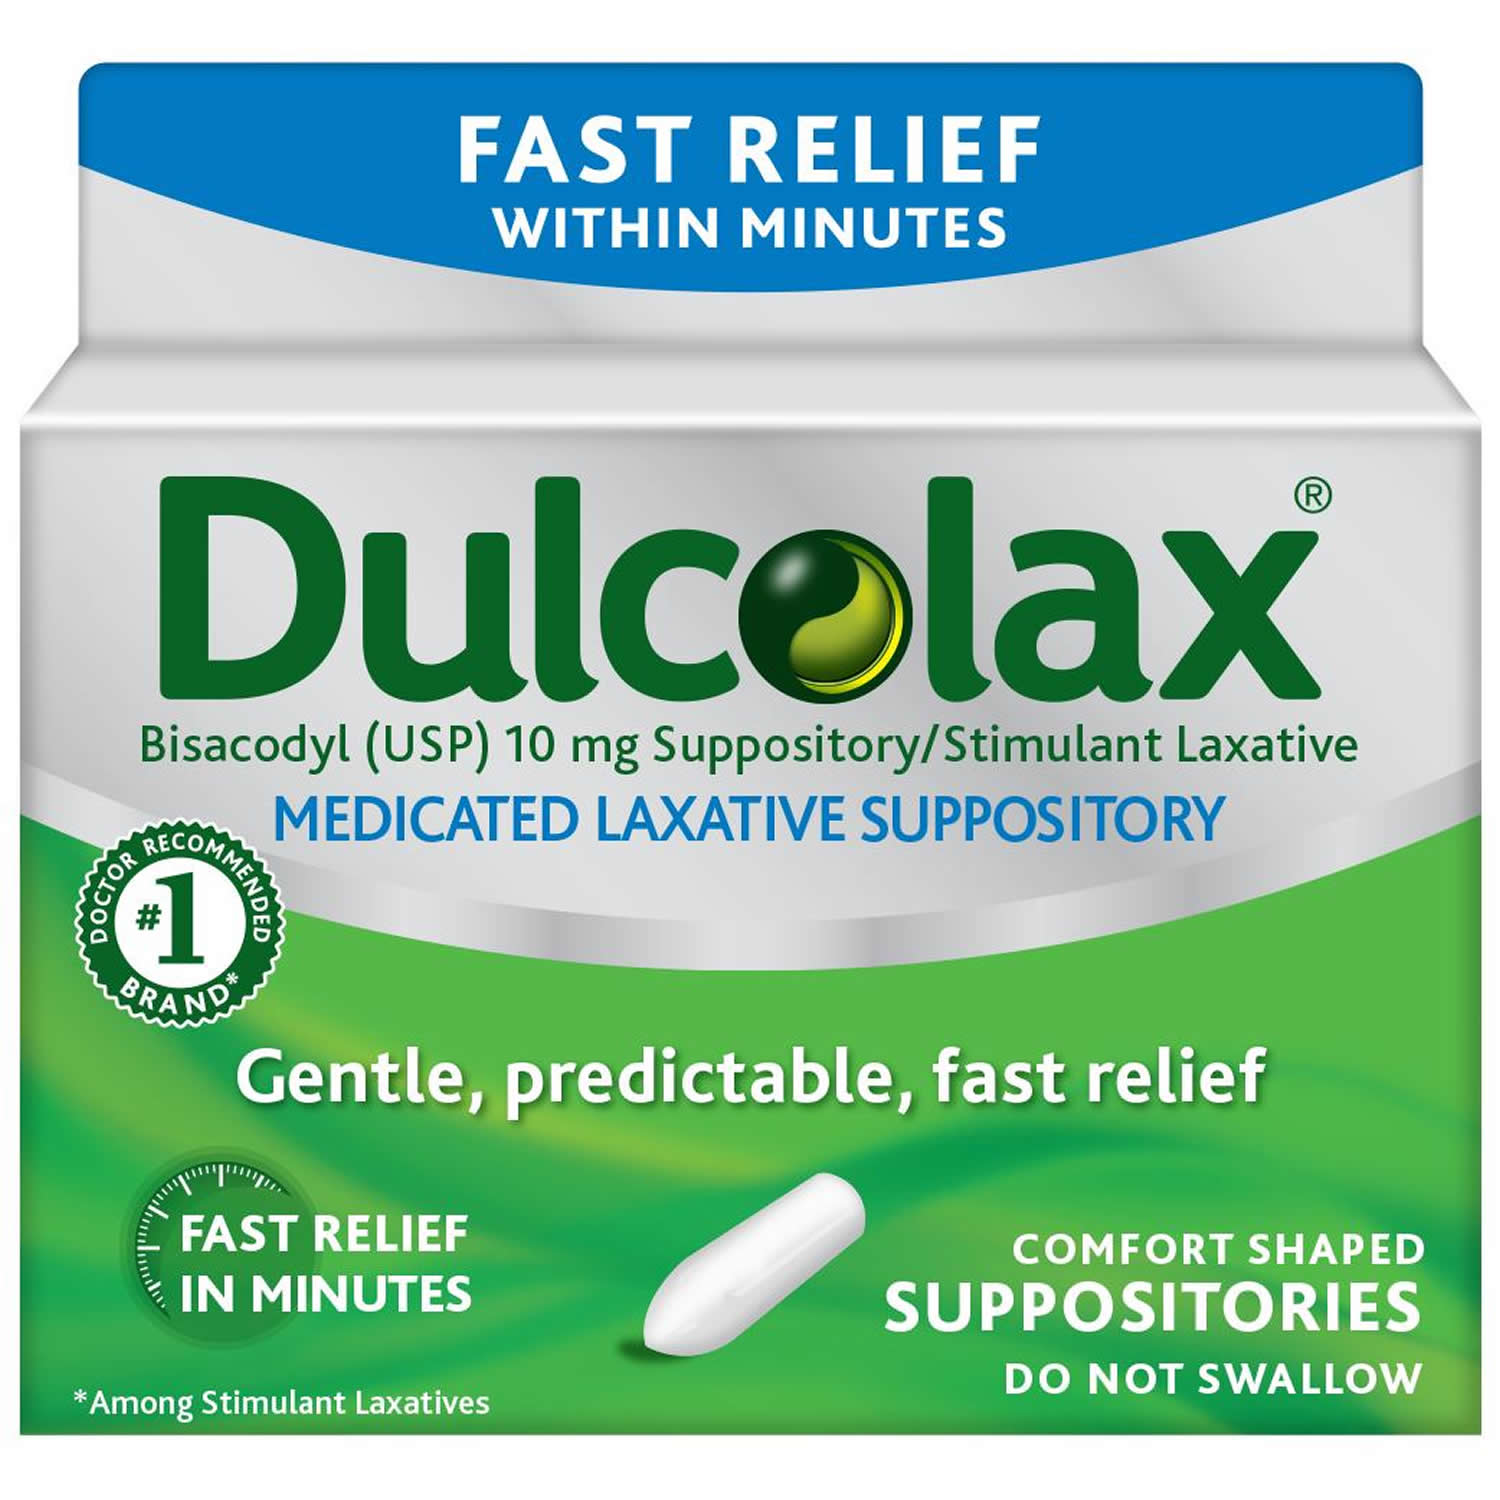 Dulcolax Weight Loss Blog Dandk